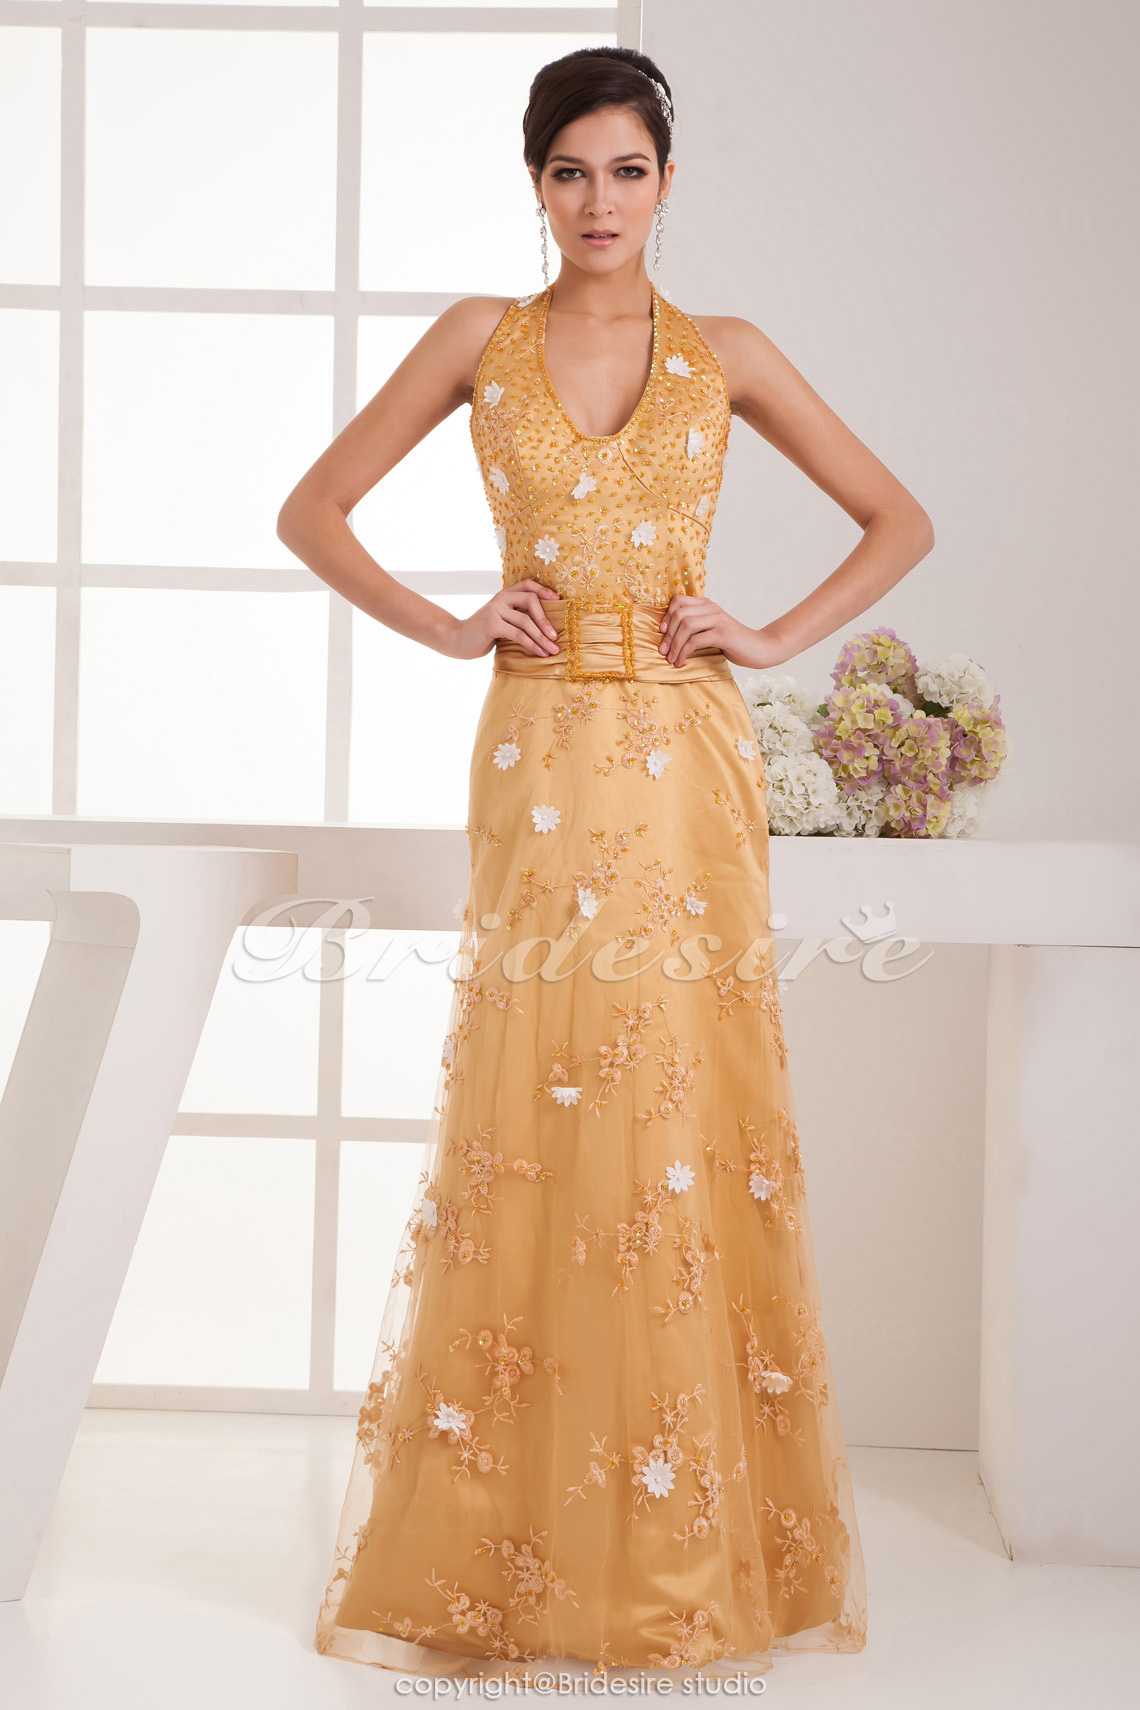 A-line Halter Floor-length Sleeveless Satin Dress